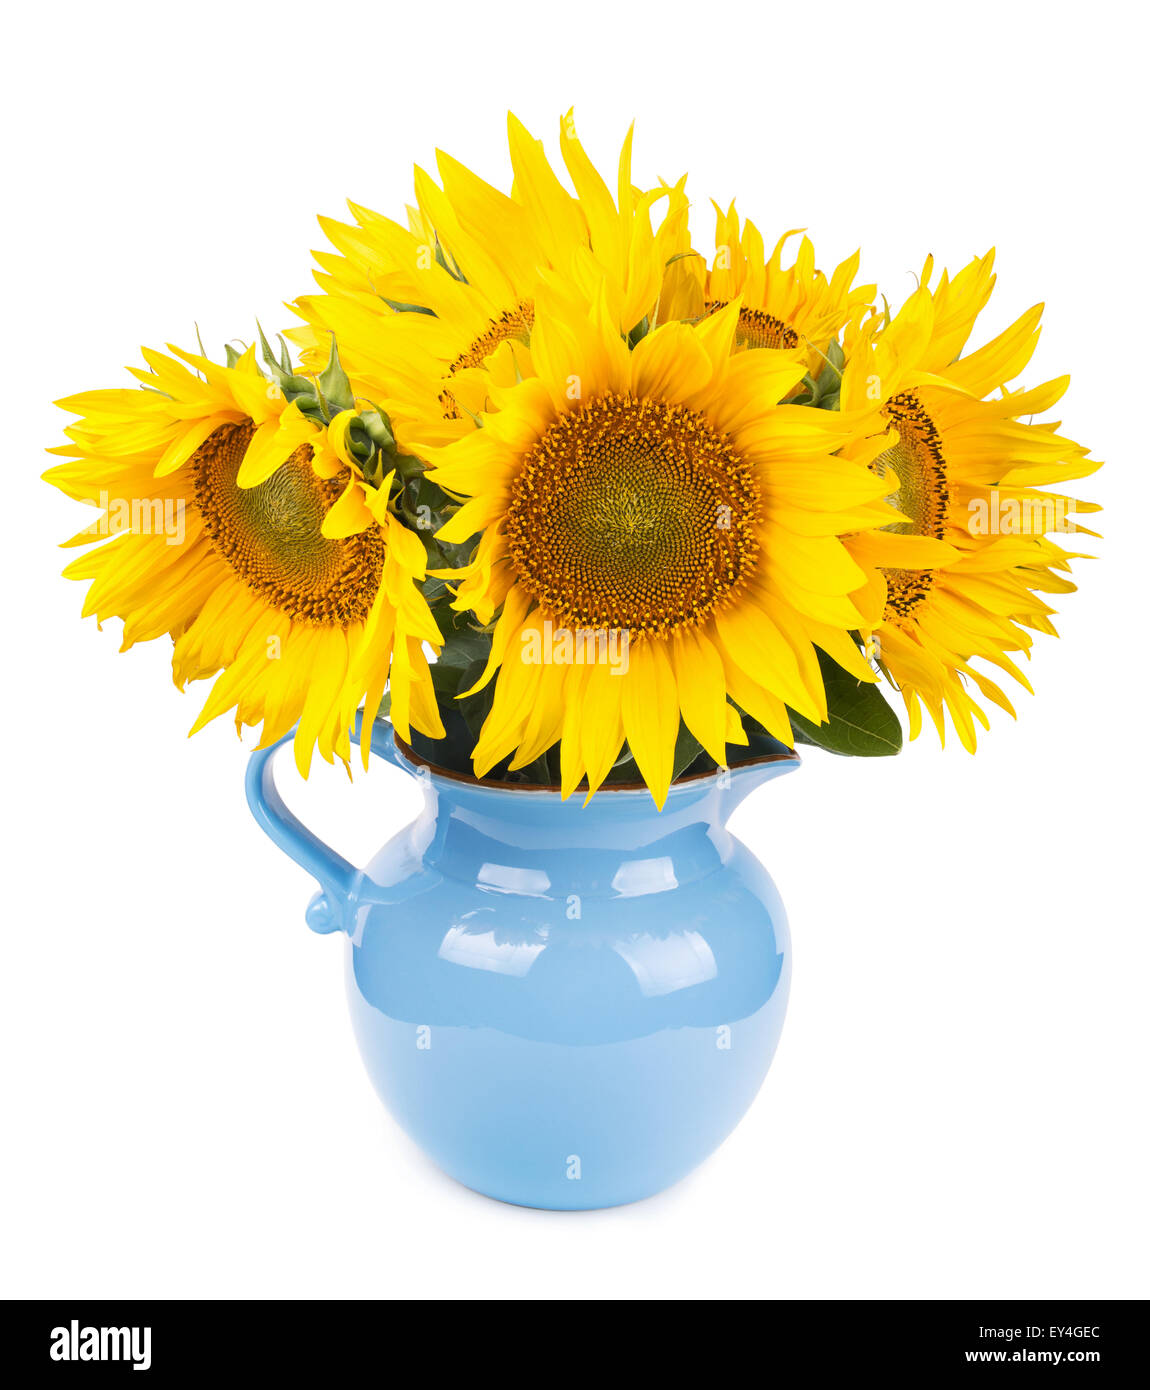 bouquet of sunflowers in blue pitcher isolated on white - Stock Image